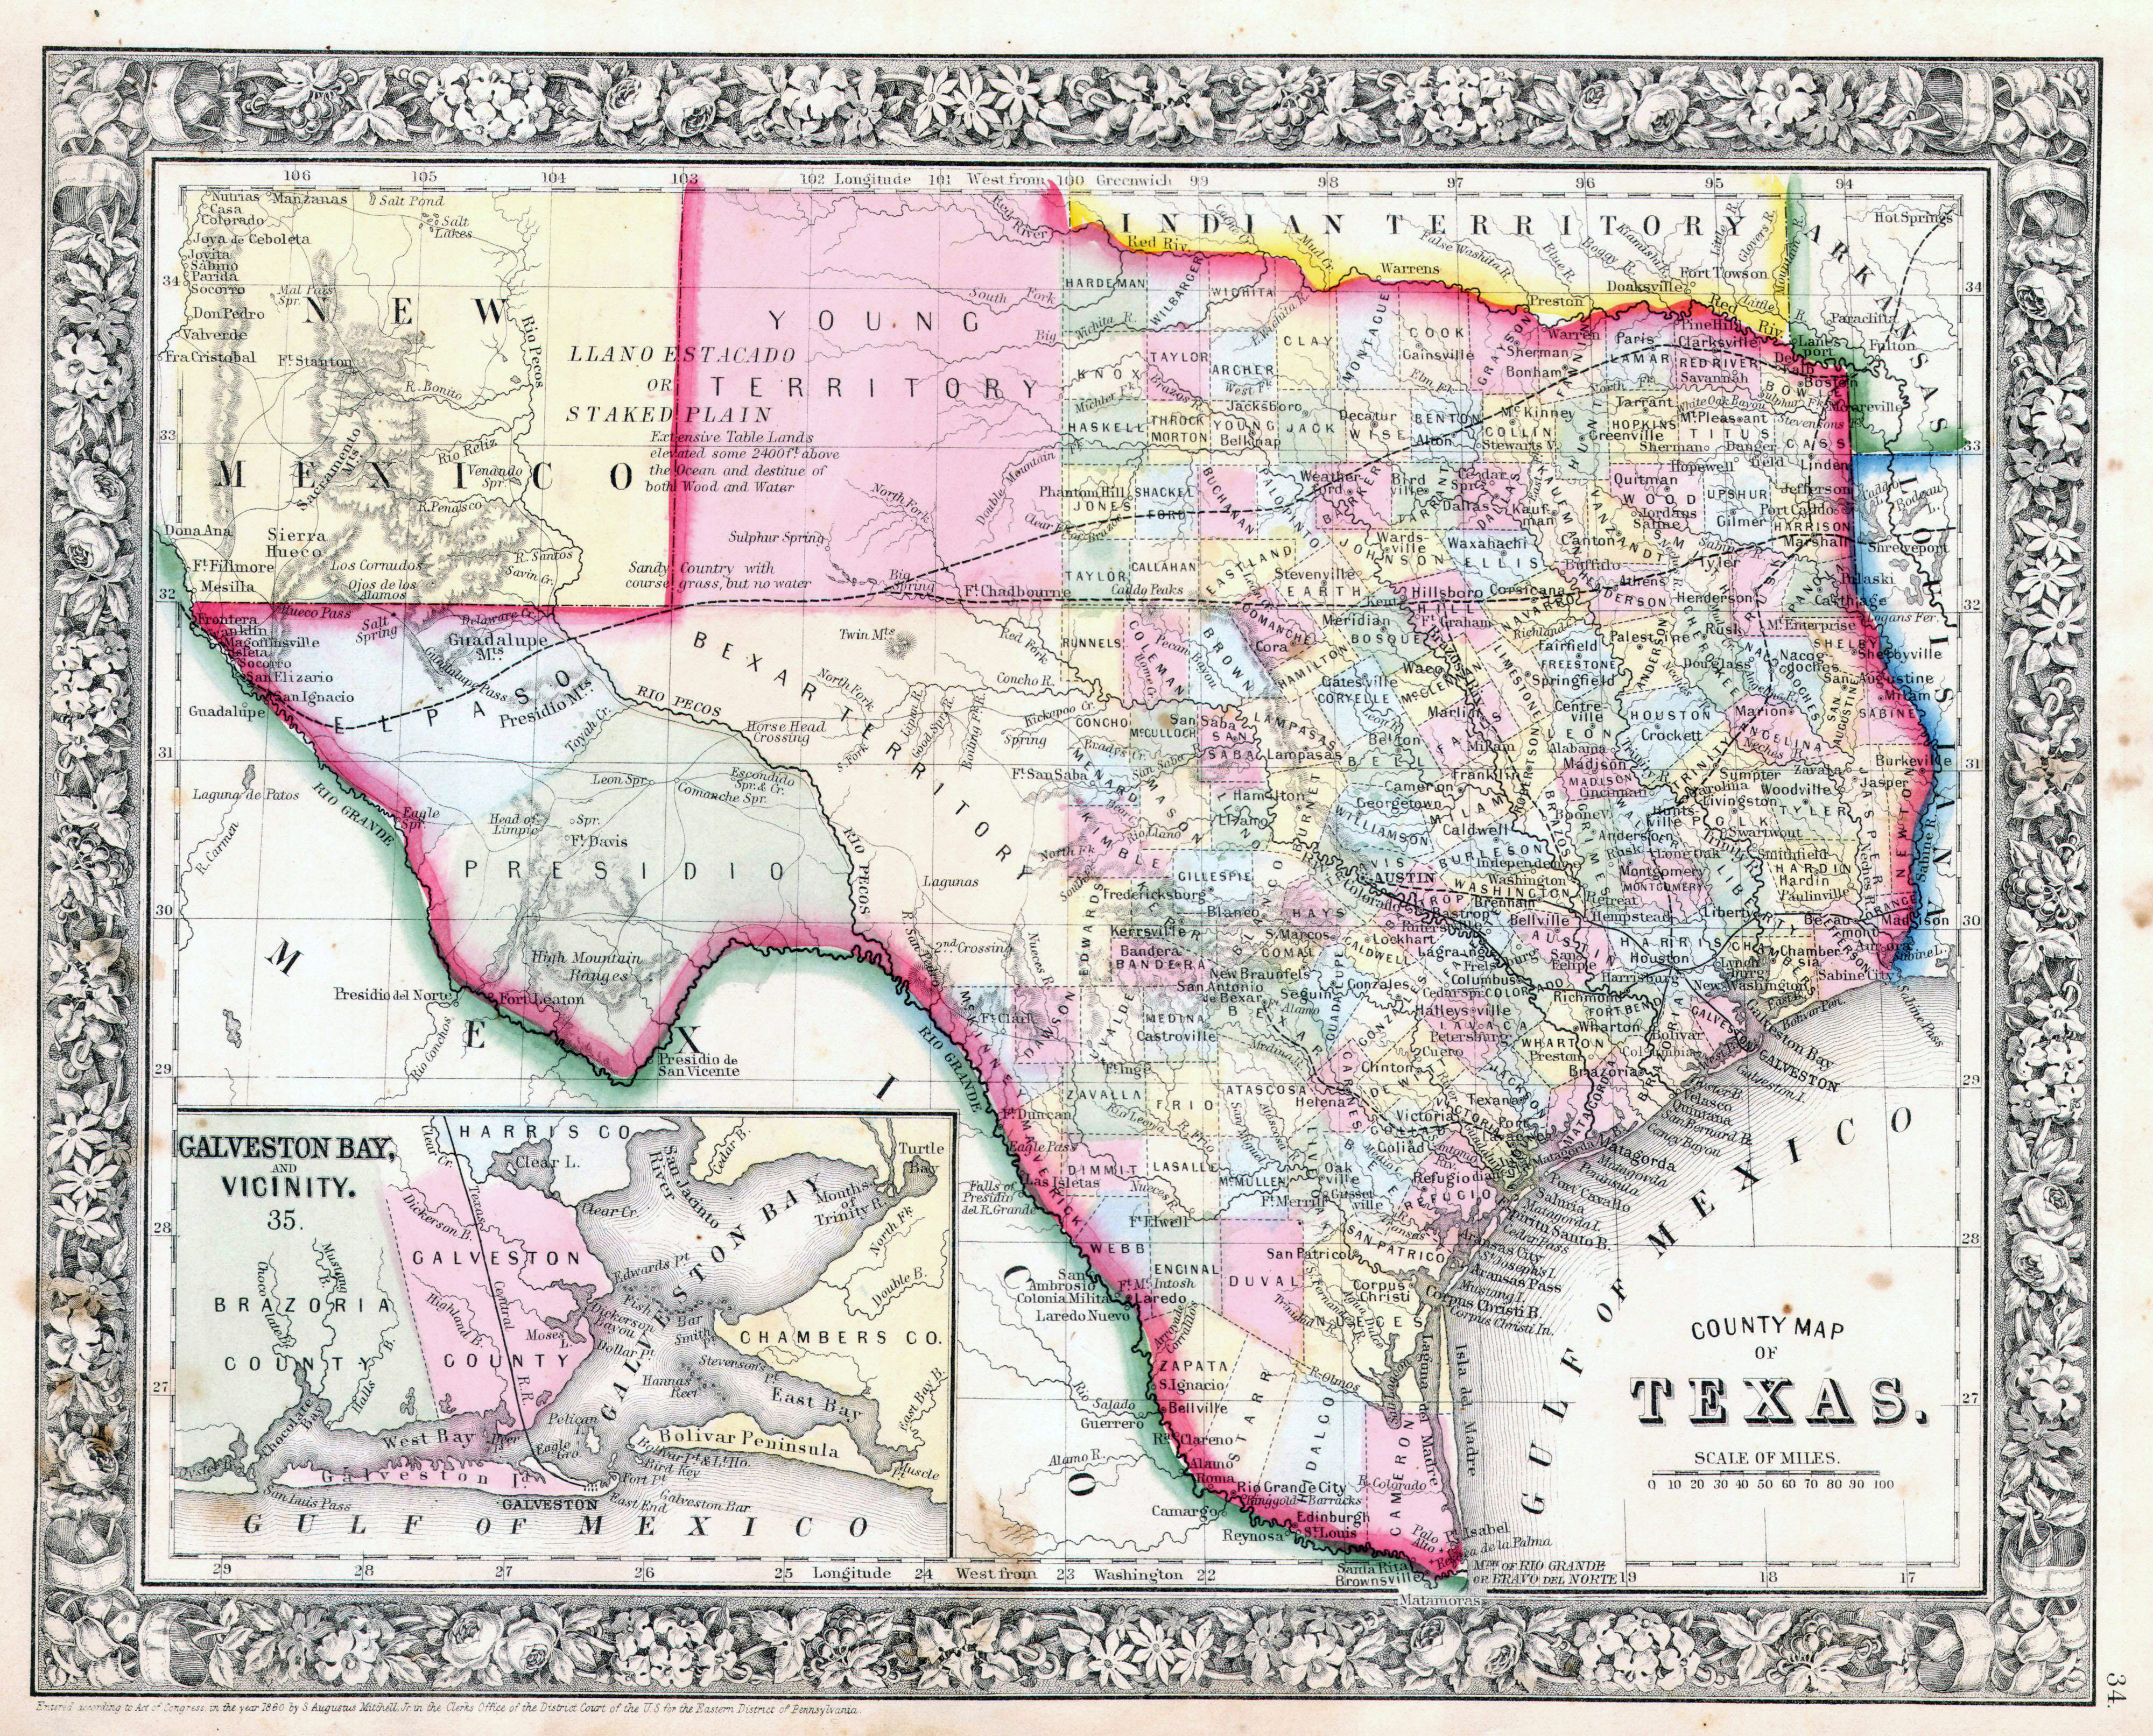 Large detailed old administrative map of Texas state with ... on red map of texas, dripping springs texas, heat map of texas, drive map of texas, map of refineries in texas, contour lake maps texas, salt production in the usa map, amaretto map of texas, gravity map of texas, salt maps for school projects, sinkhole map of texas,